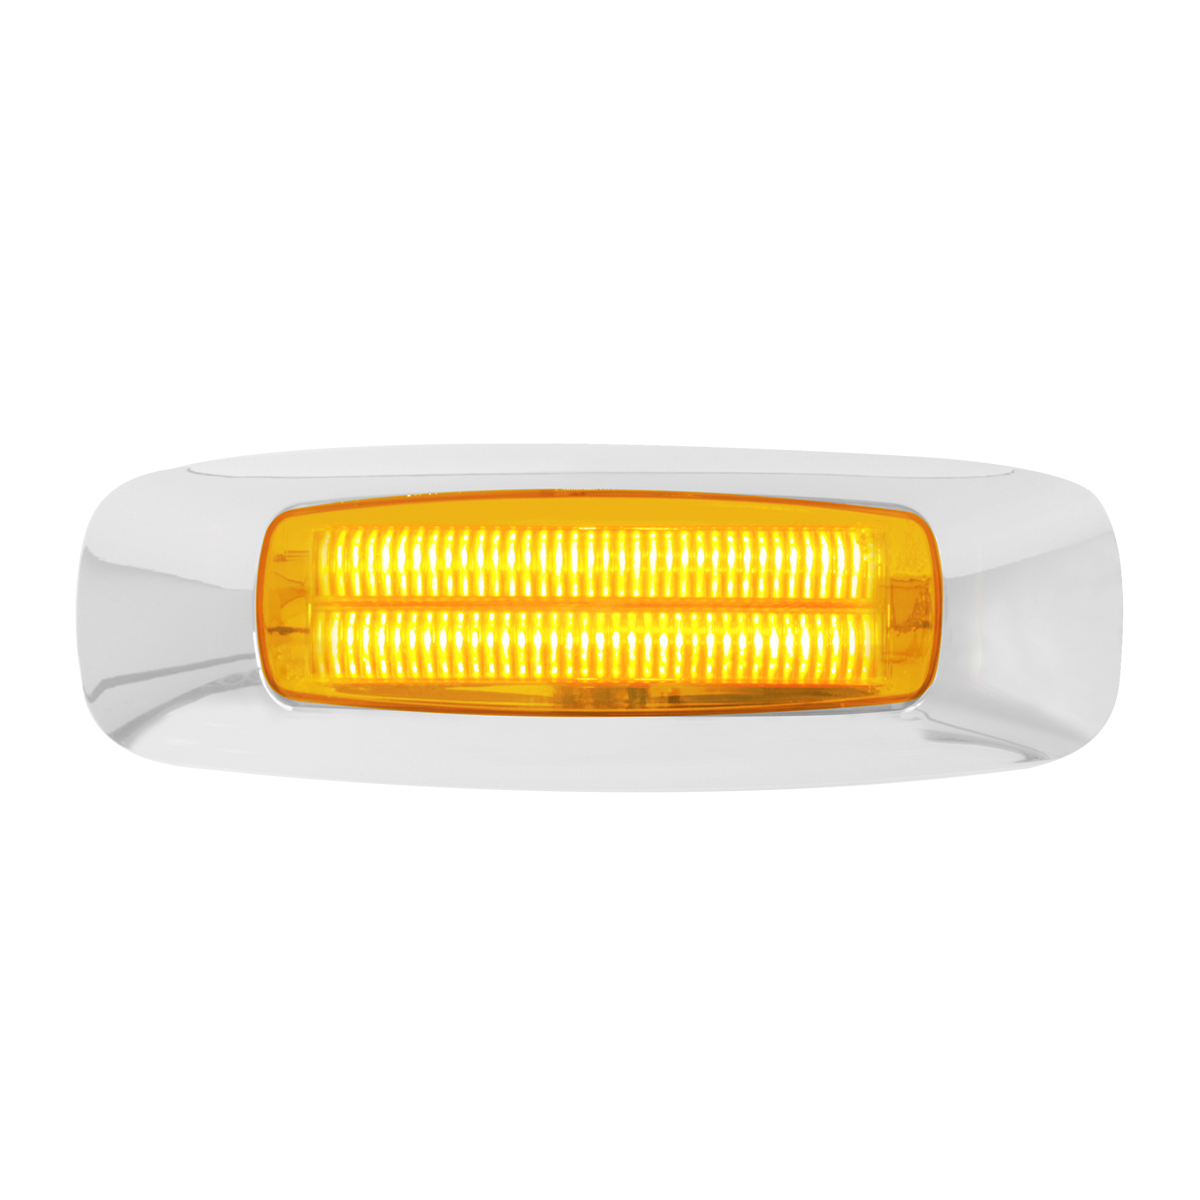 "74830 4-5/8"" Rectangular Prime LED Marker Light in Amber/Amber"